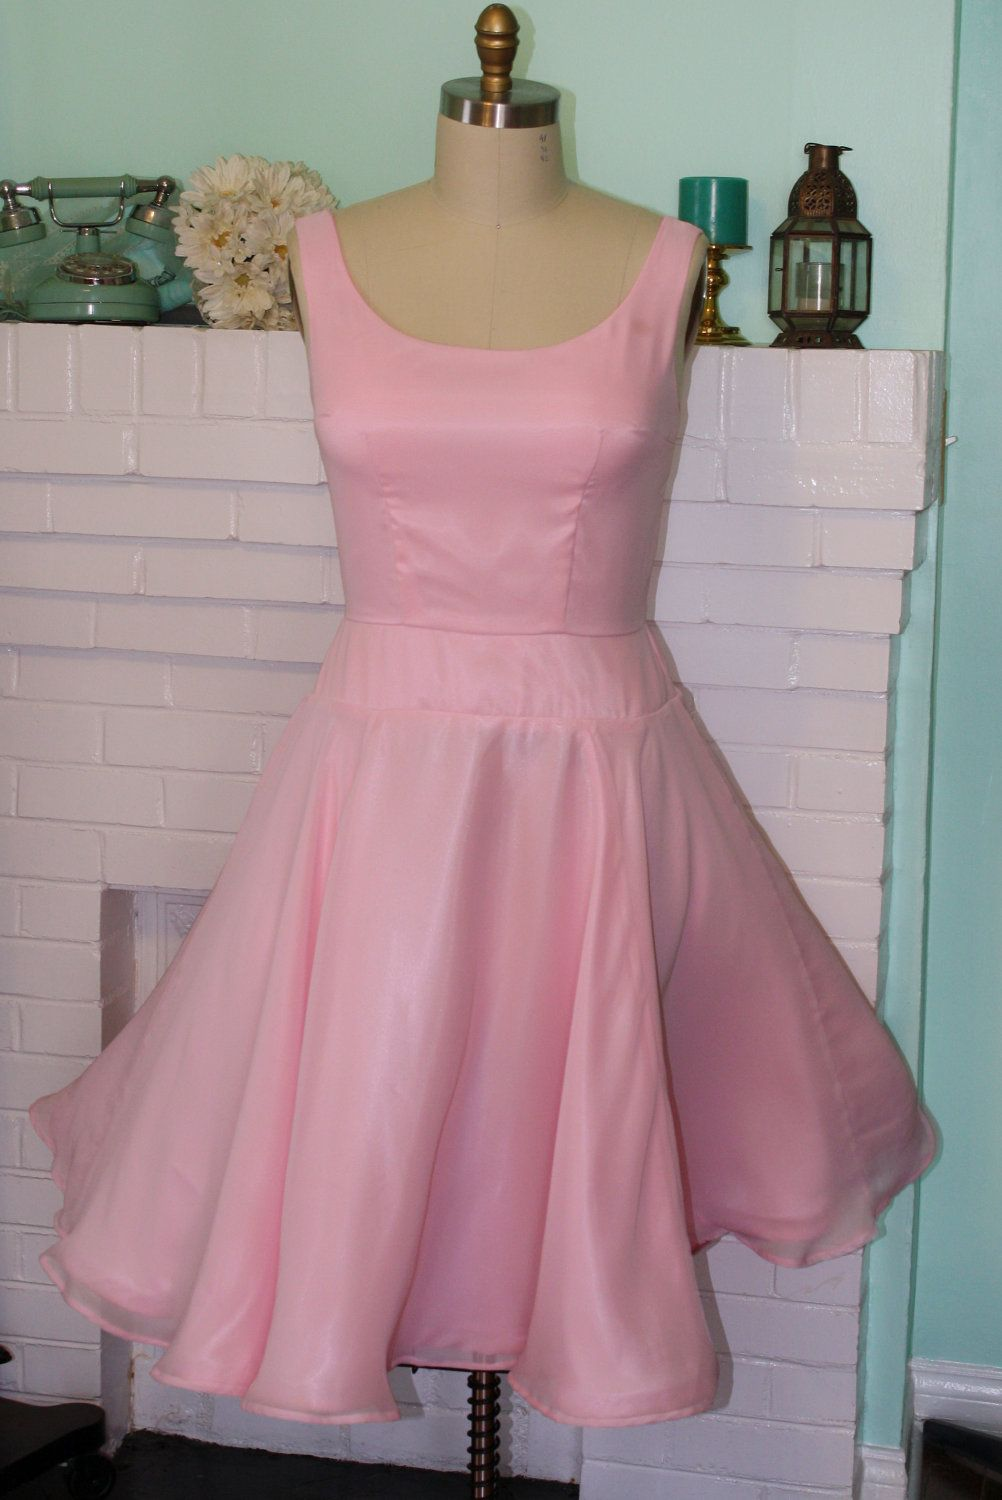 dirty dancing dress i always wanted one clothes